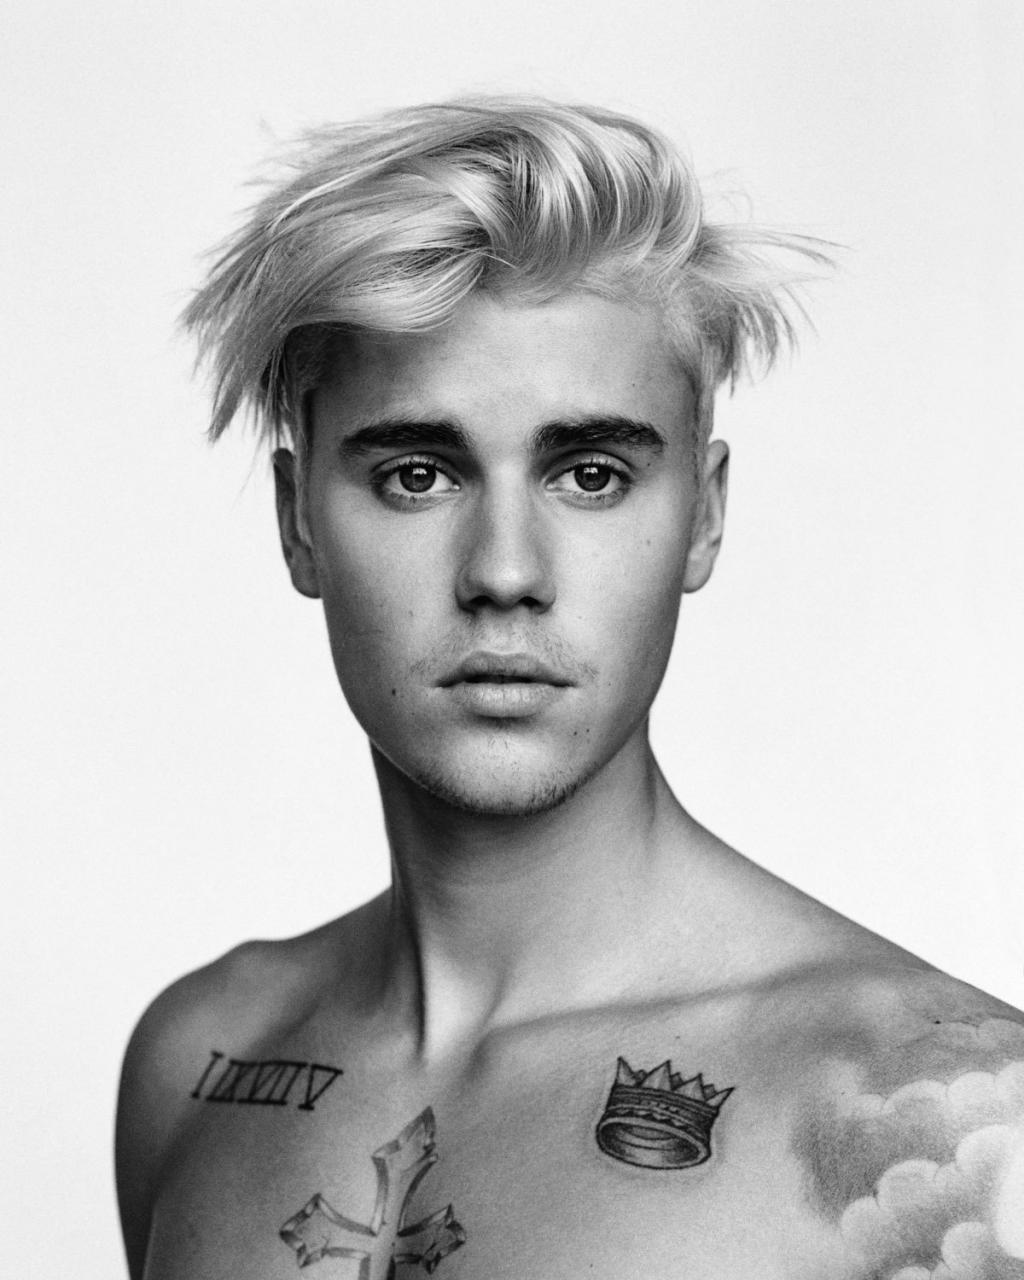 Justin Bieber Exclusive Interview, Shoot And Video: The